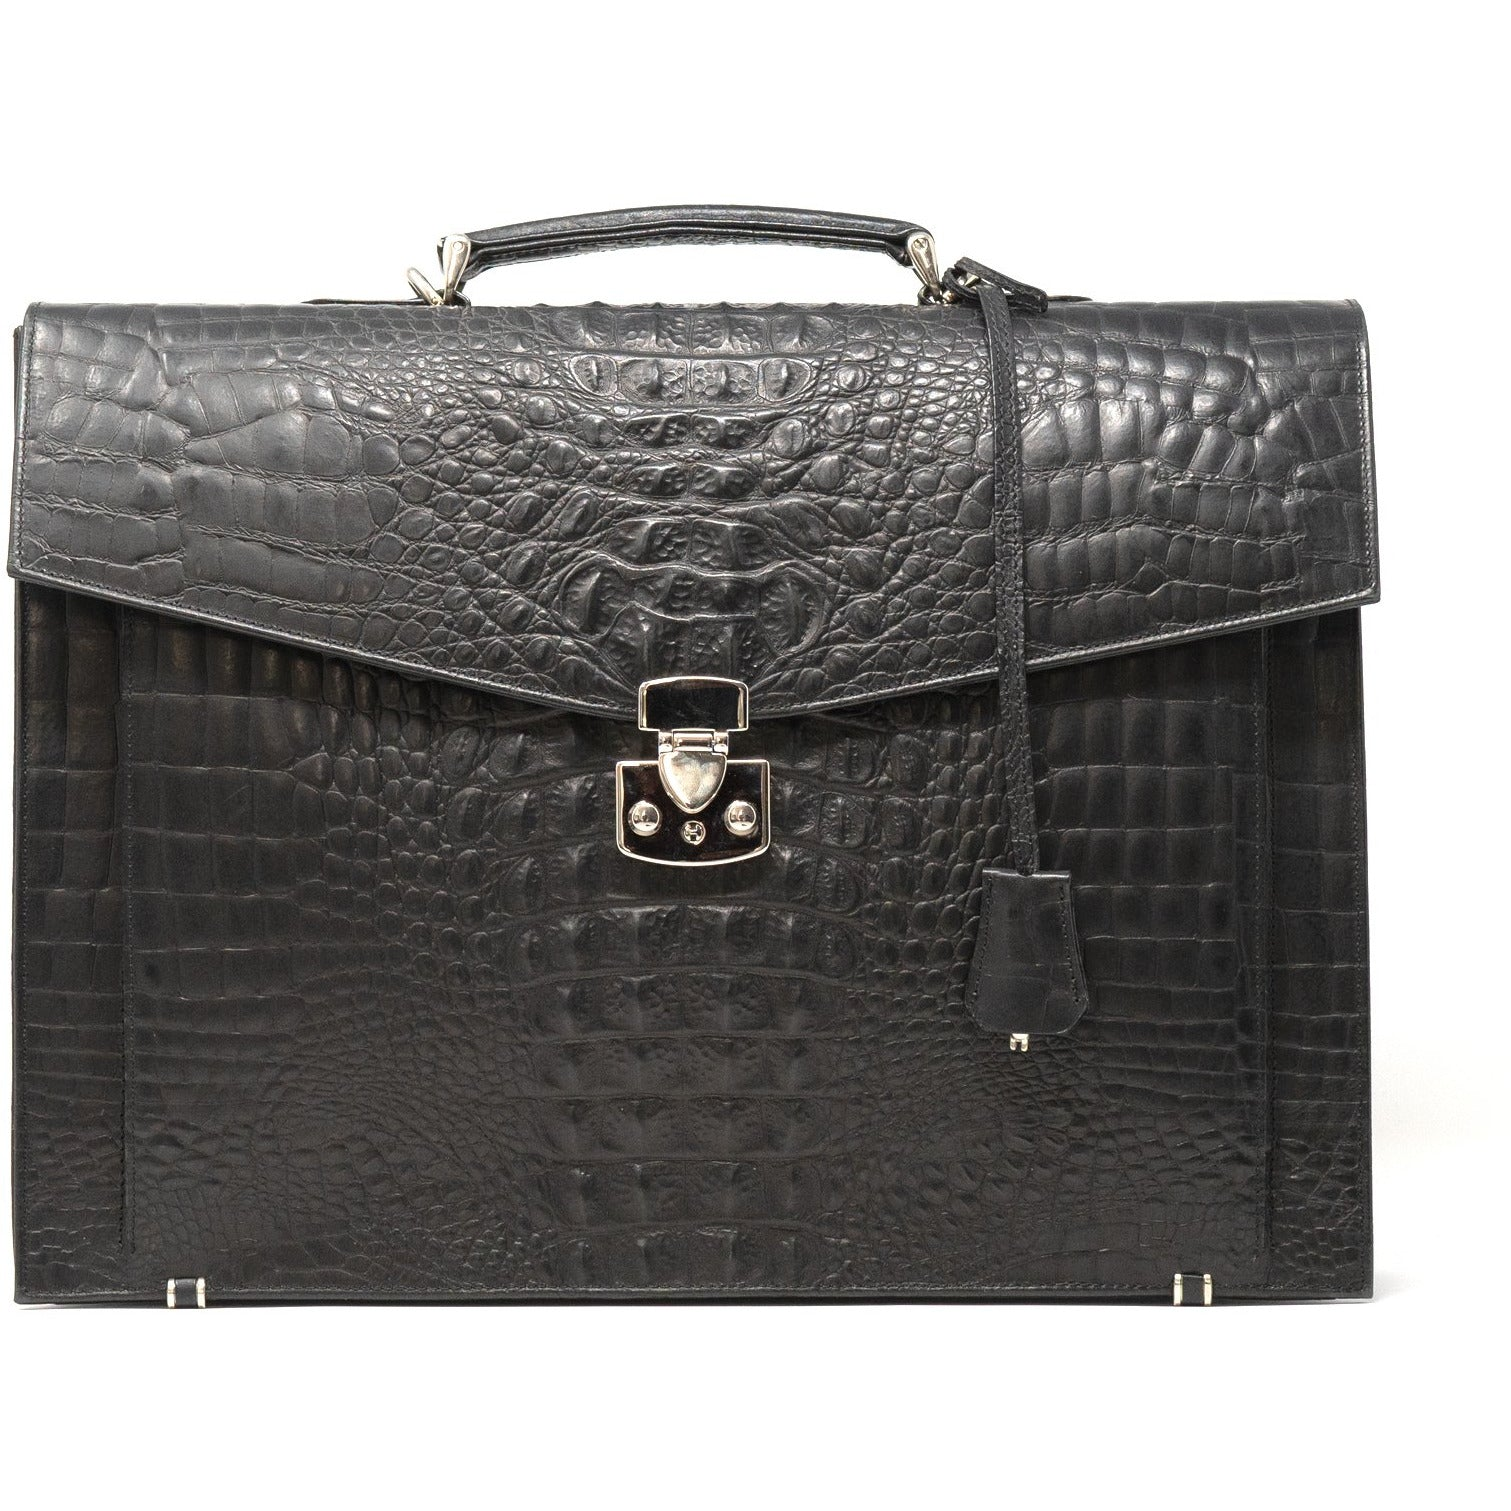 JT324 8009 Men Briefcase Printed Alligator